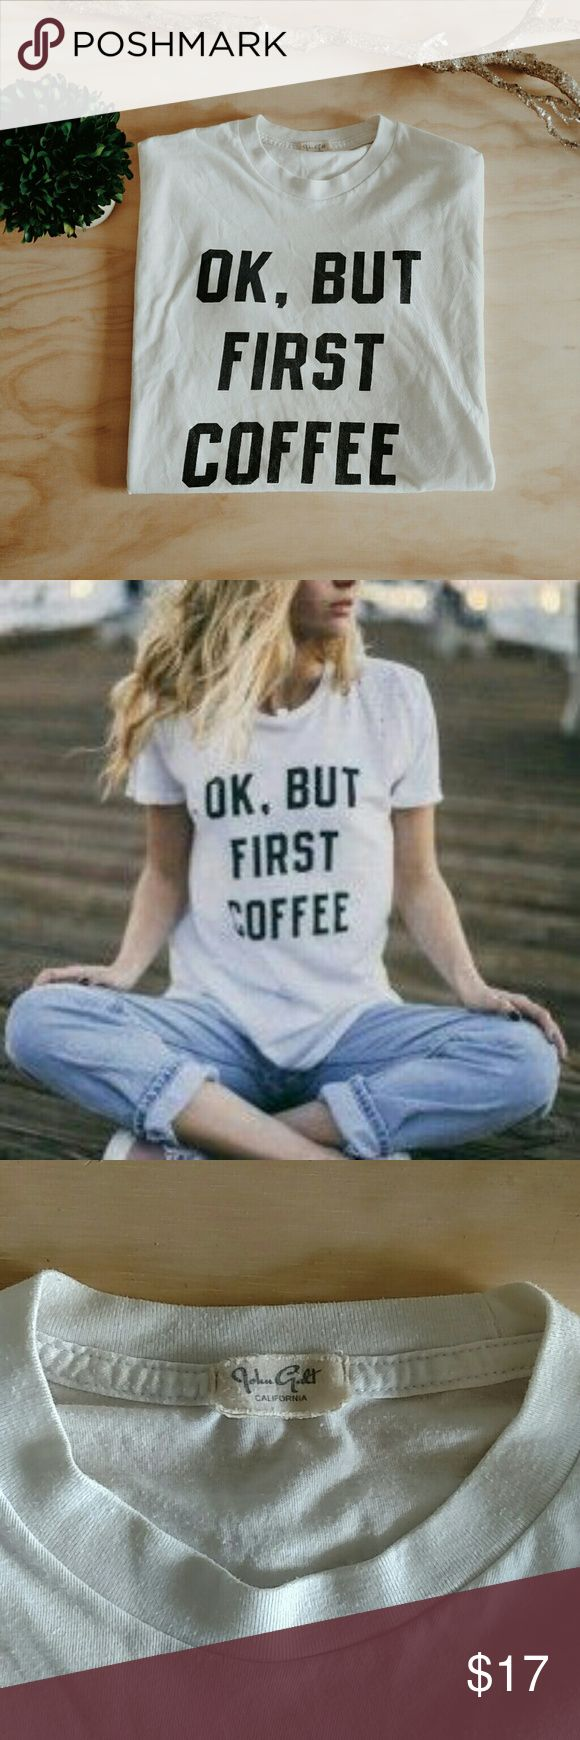 """Brandy Melville Ok But First Coffee Shirt John Galt/Brandy Melville """"Ok, But First Coffee"""" Tee shirt, slight piling over whole shirt. Small stain on back(seen in 4th pic). Some minor loose threads, good condition! This is NOT the fitted tee! Much looser, laid back type!  Like this item? Check out my others! Thanks! Brandy Melville Tops Tees - Short Sleeve"""